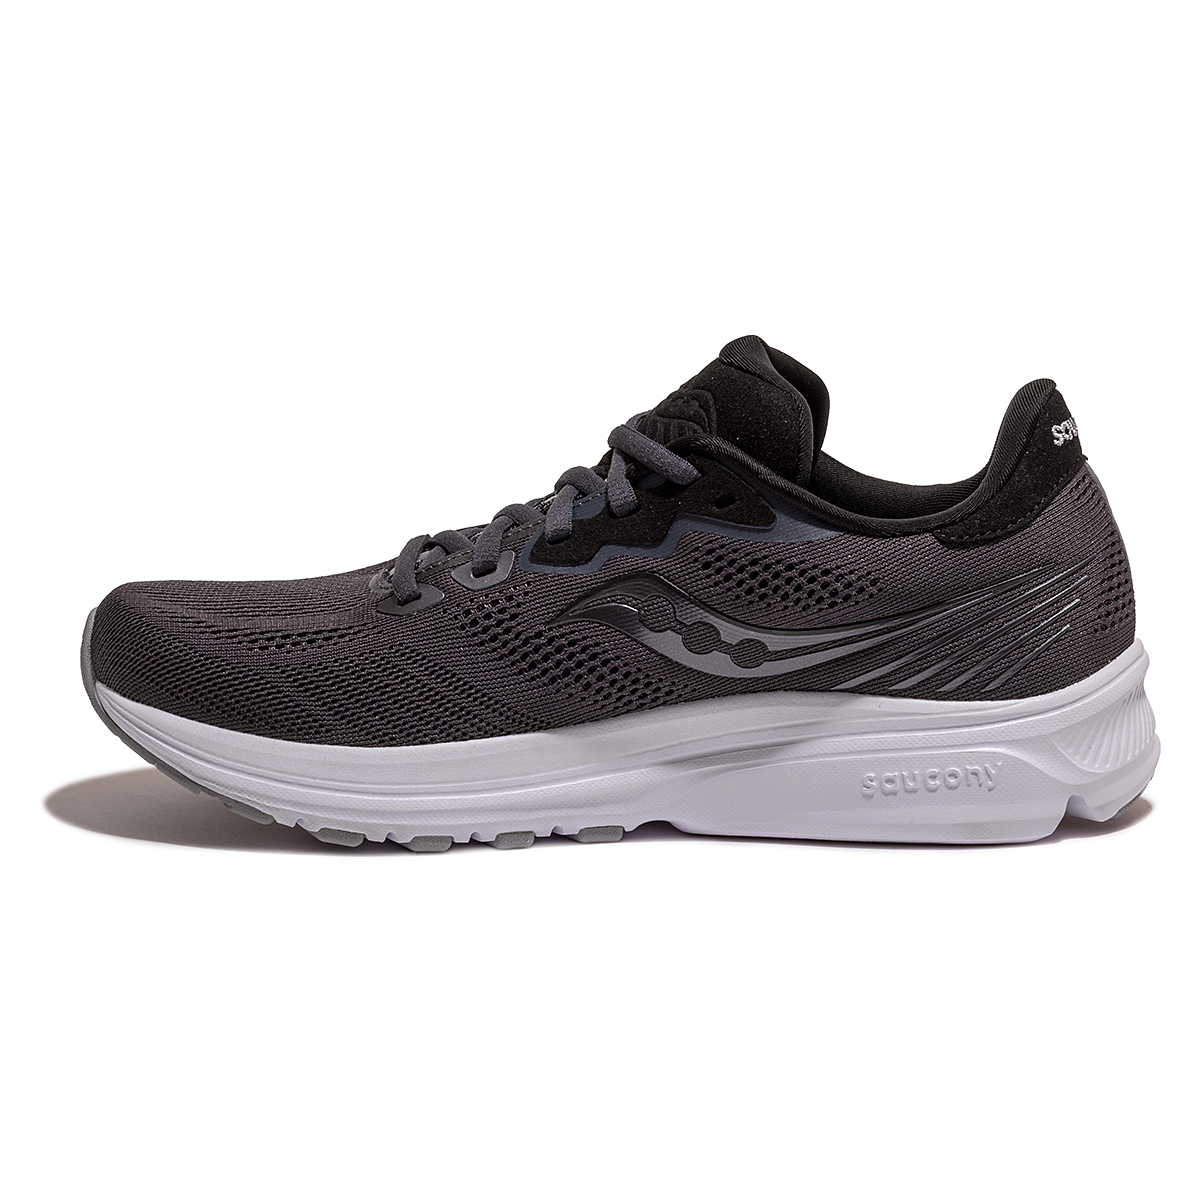 Men's Saucony Ride 14 Running Shoe - Color: Charcoal/Black - Size: 7 - Width: Wide, Charcoal/Black, large, image 2